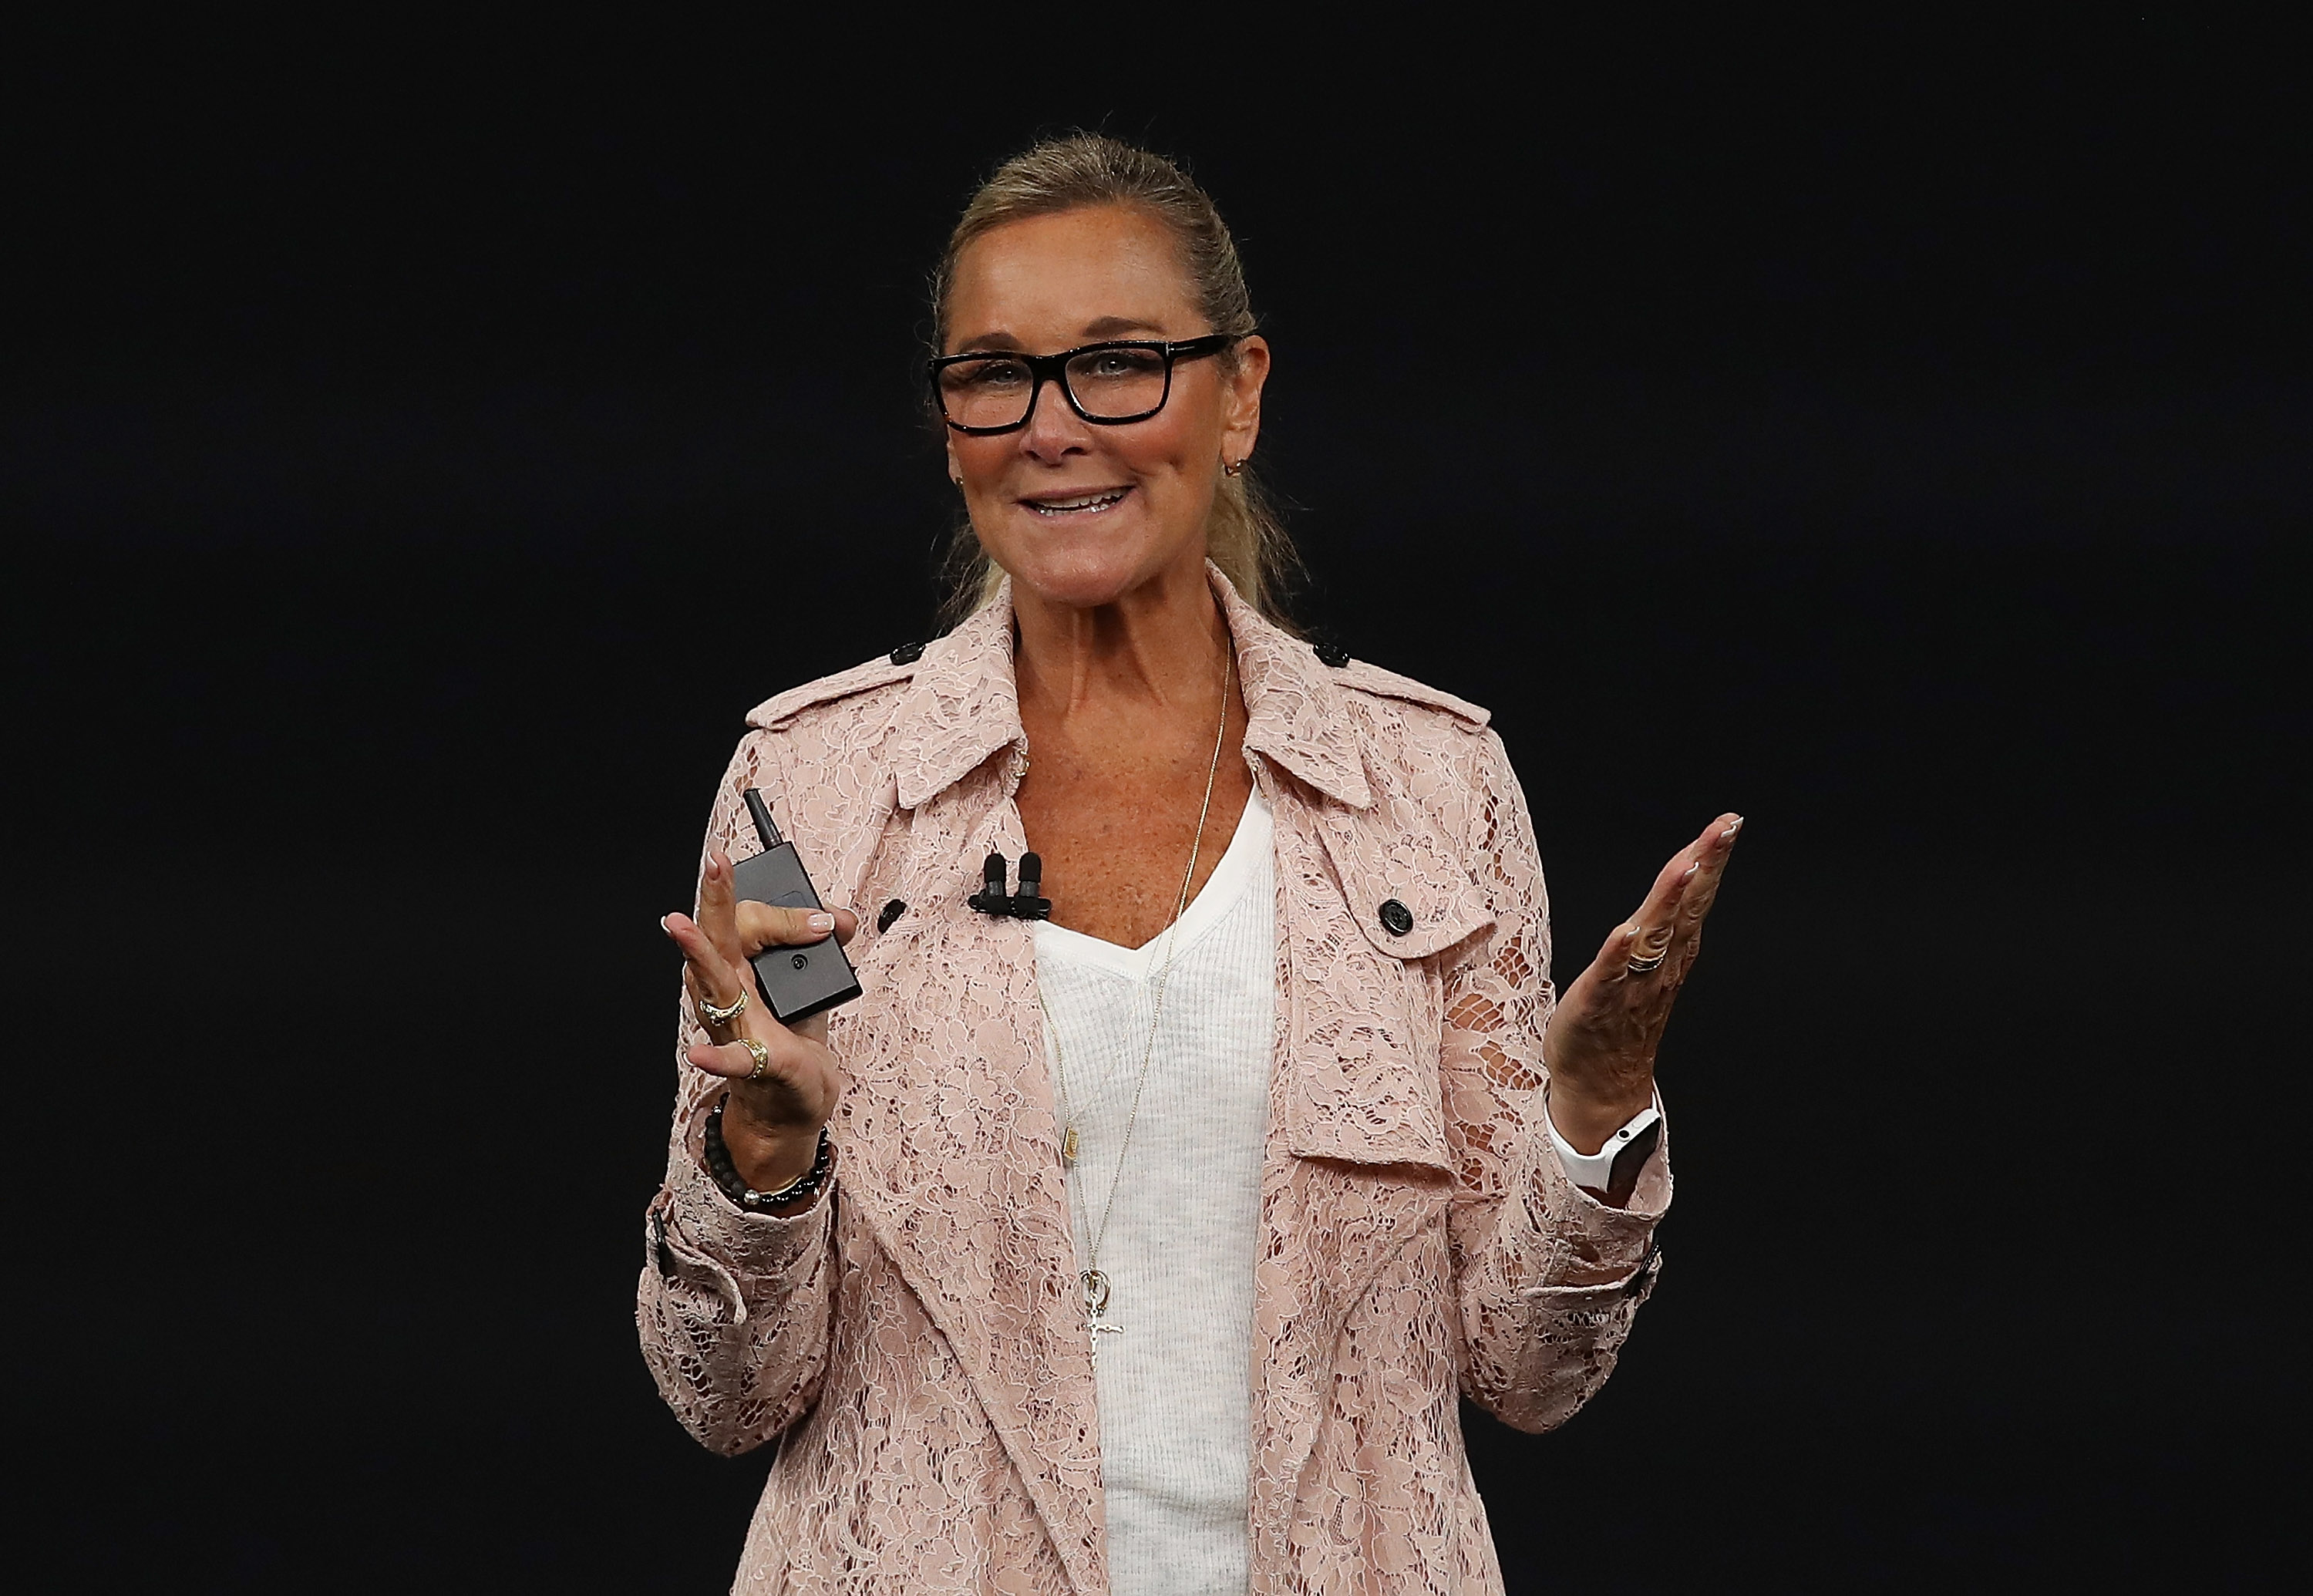 Apple senior vice president of retail Angela Ahrendts in a lacy pink Burberry trenchcoat.